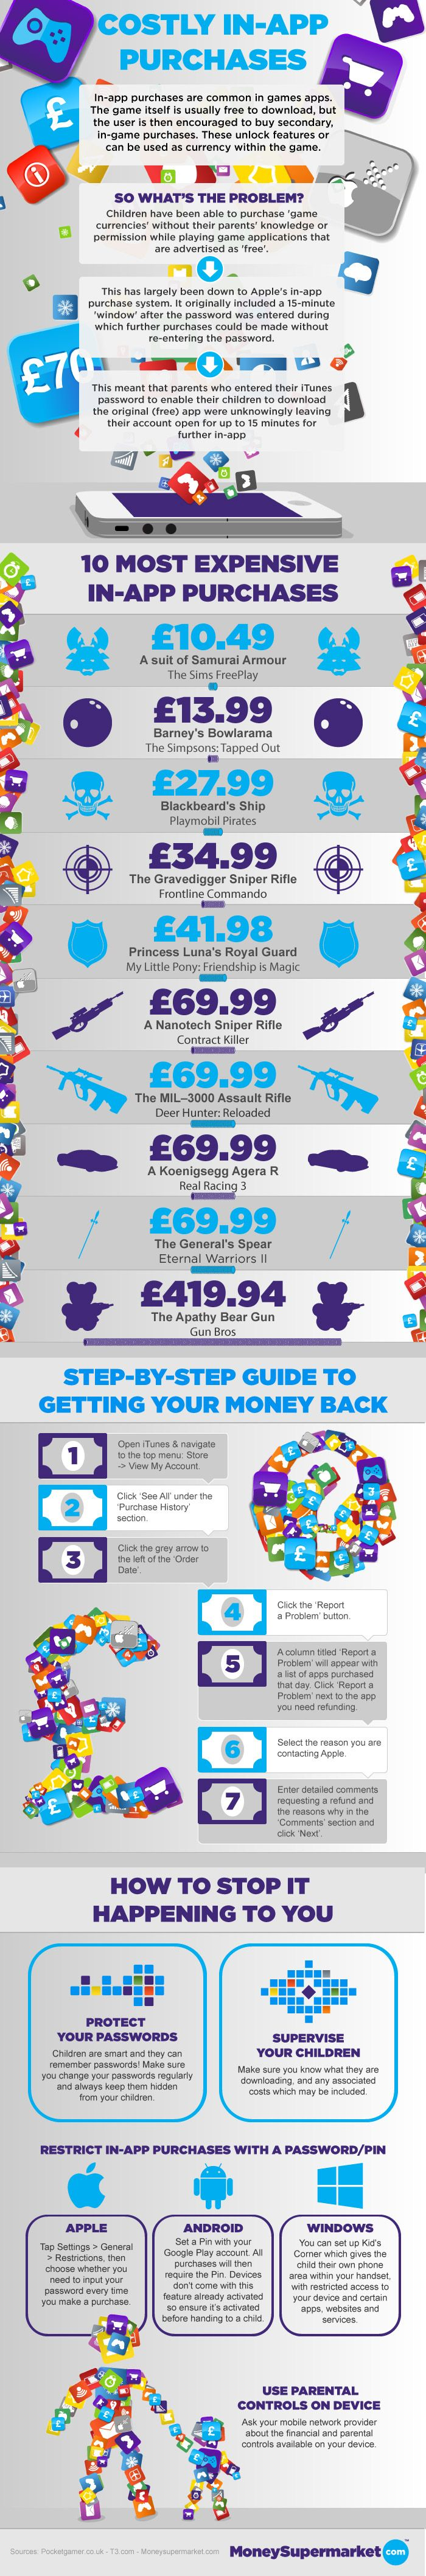 Parents have complained about their children running-up bills for hundreds of pounds by making in-app purchases. But how does this happen, and what can you do to steer clear of similar shocks? This infographic gives you the low-down on in-app purchases, what they are, how to avoid them, and what to do if you've fallen victim.